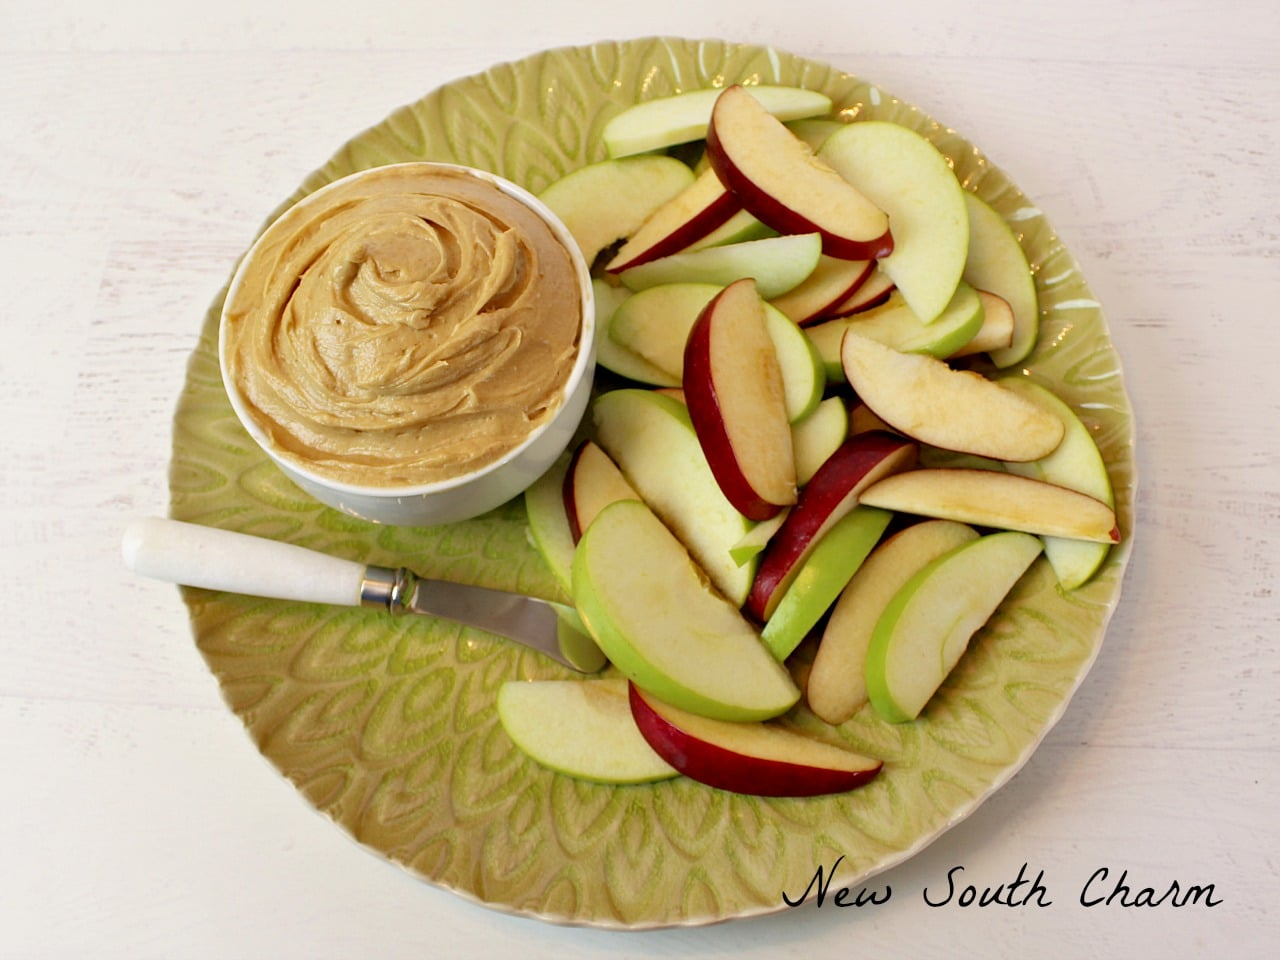 Creamy Peanut Butter Fruit Dip is an easy snack the whole family love. Made with 5 ingredients in less than 10 minutes.